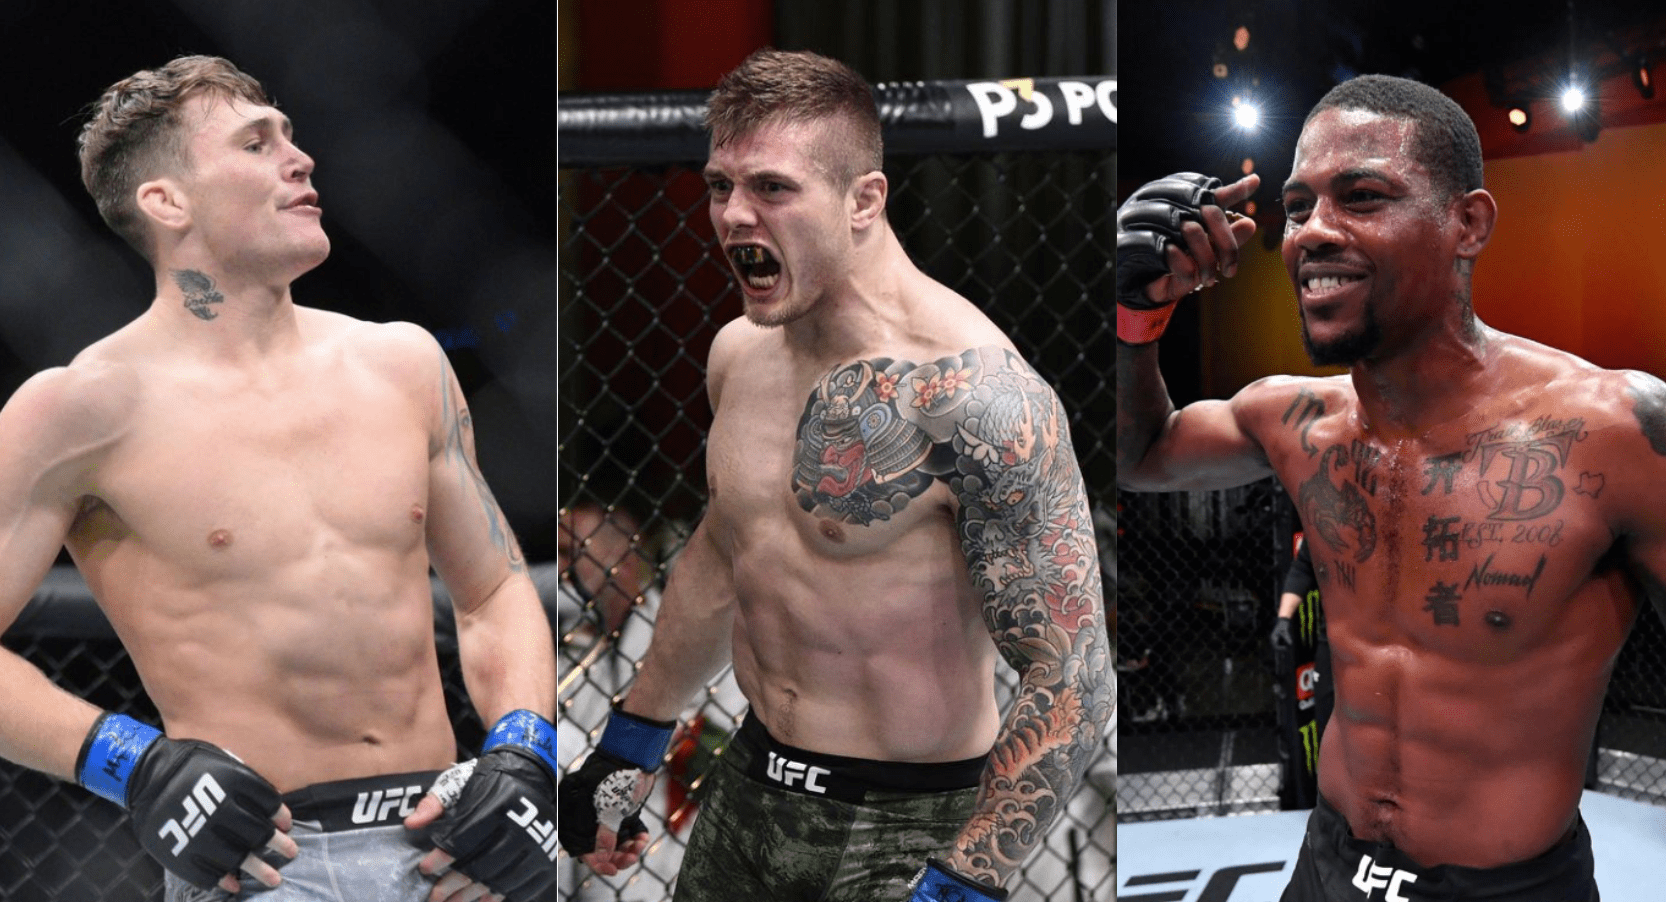 Darren Till pulls out of fight against Marvin Vettori due to collarbone injury; Kevin Holland offers to step in on short notice - Darren Till